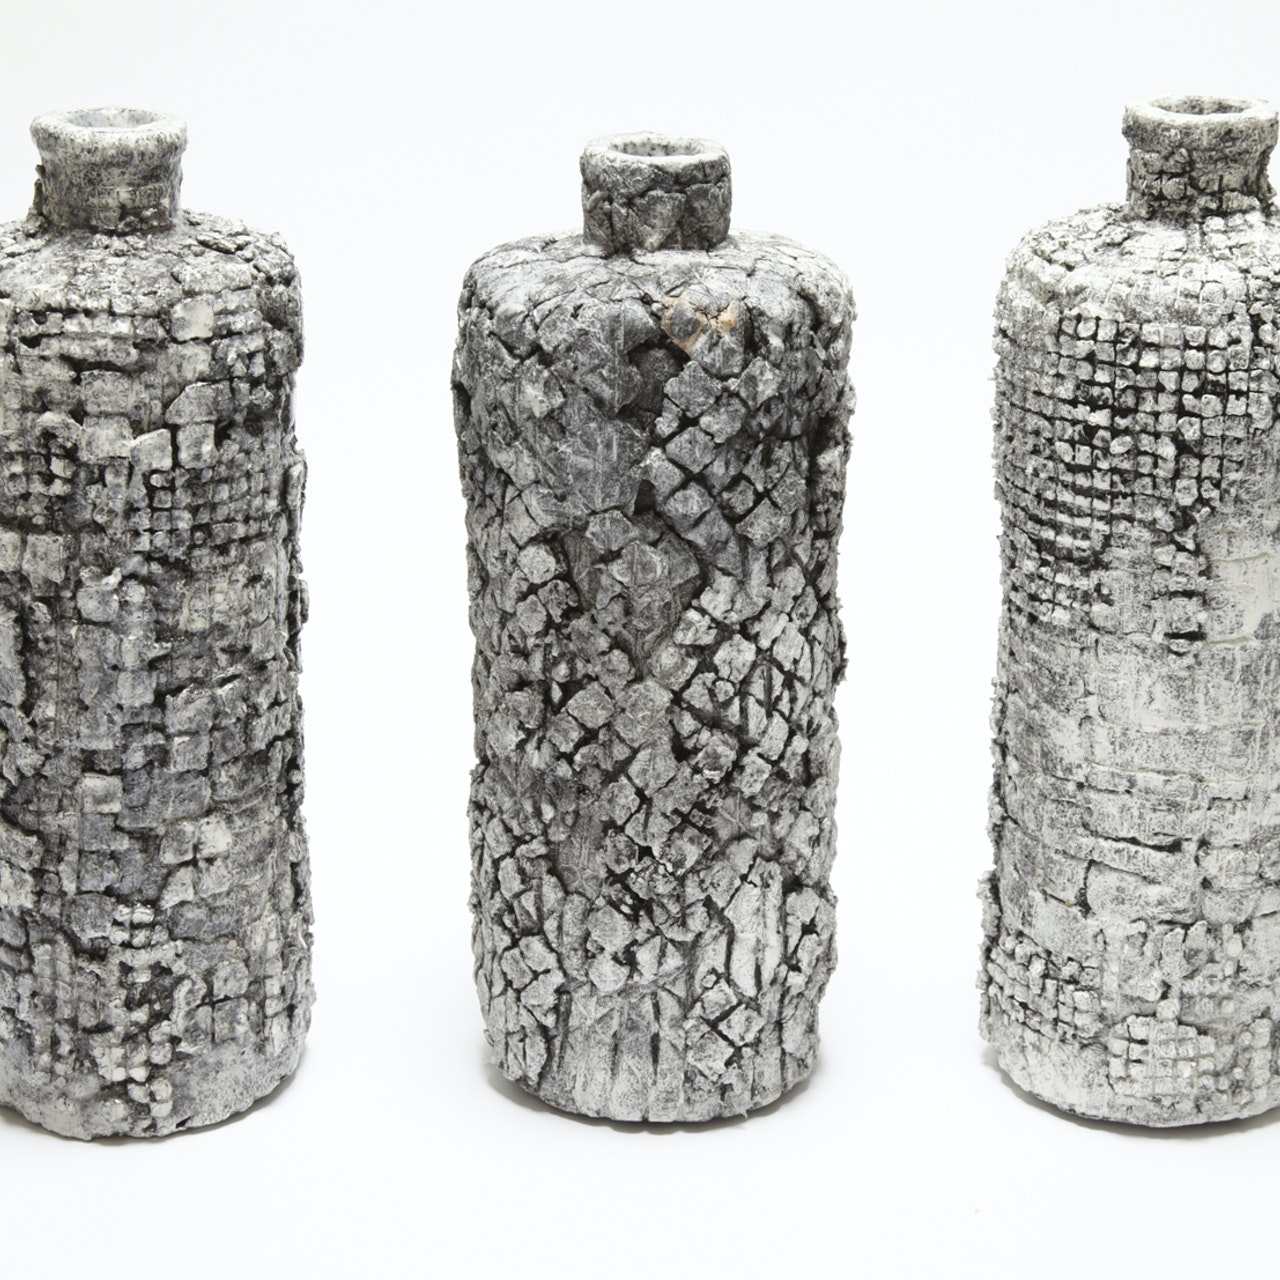 Patchwork Bottles